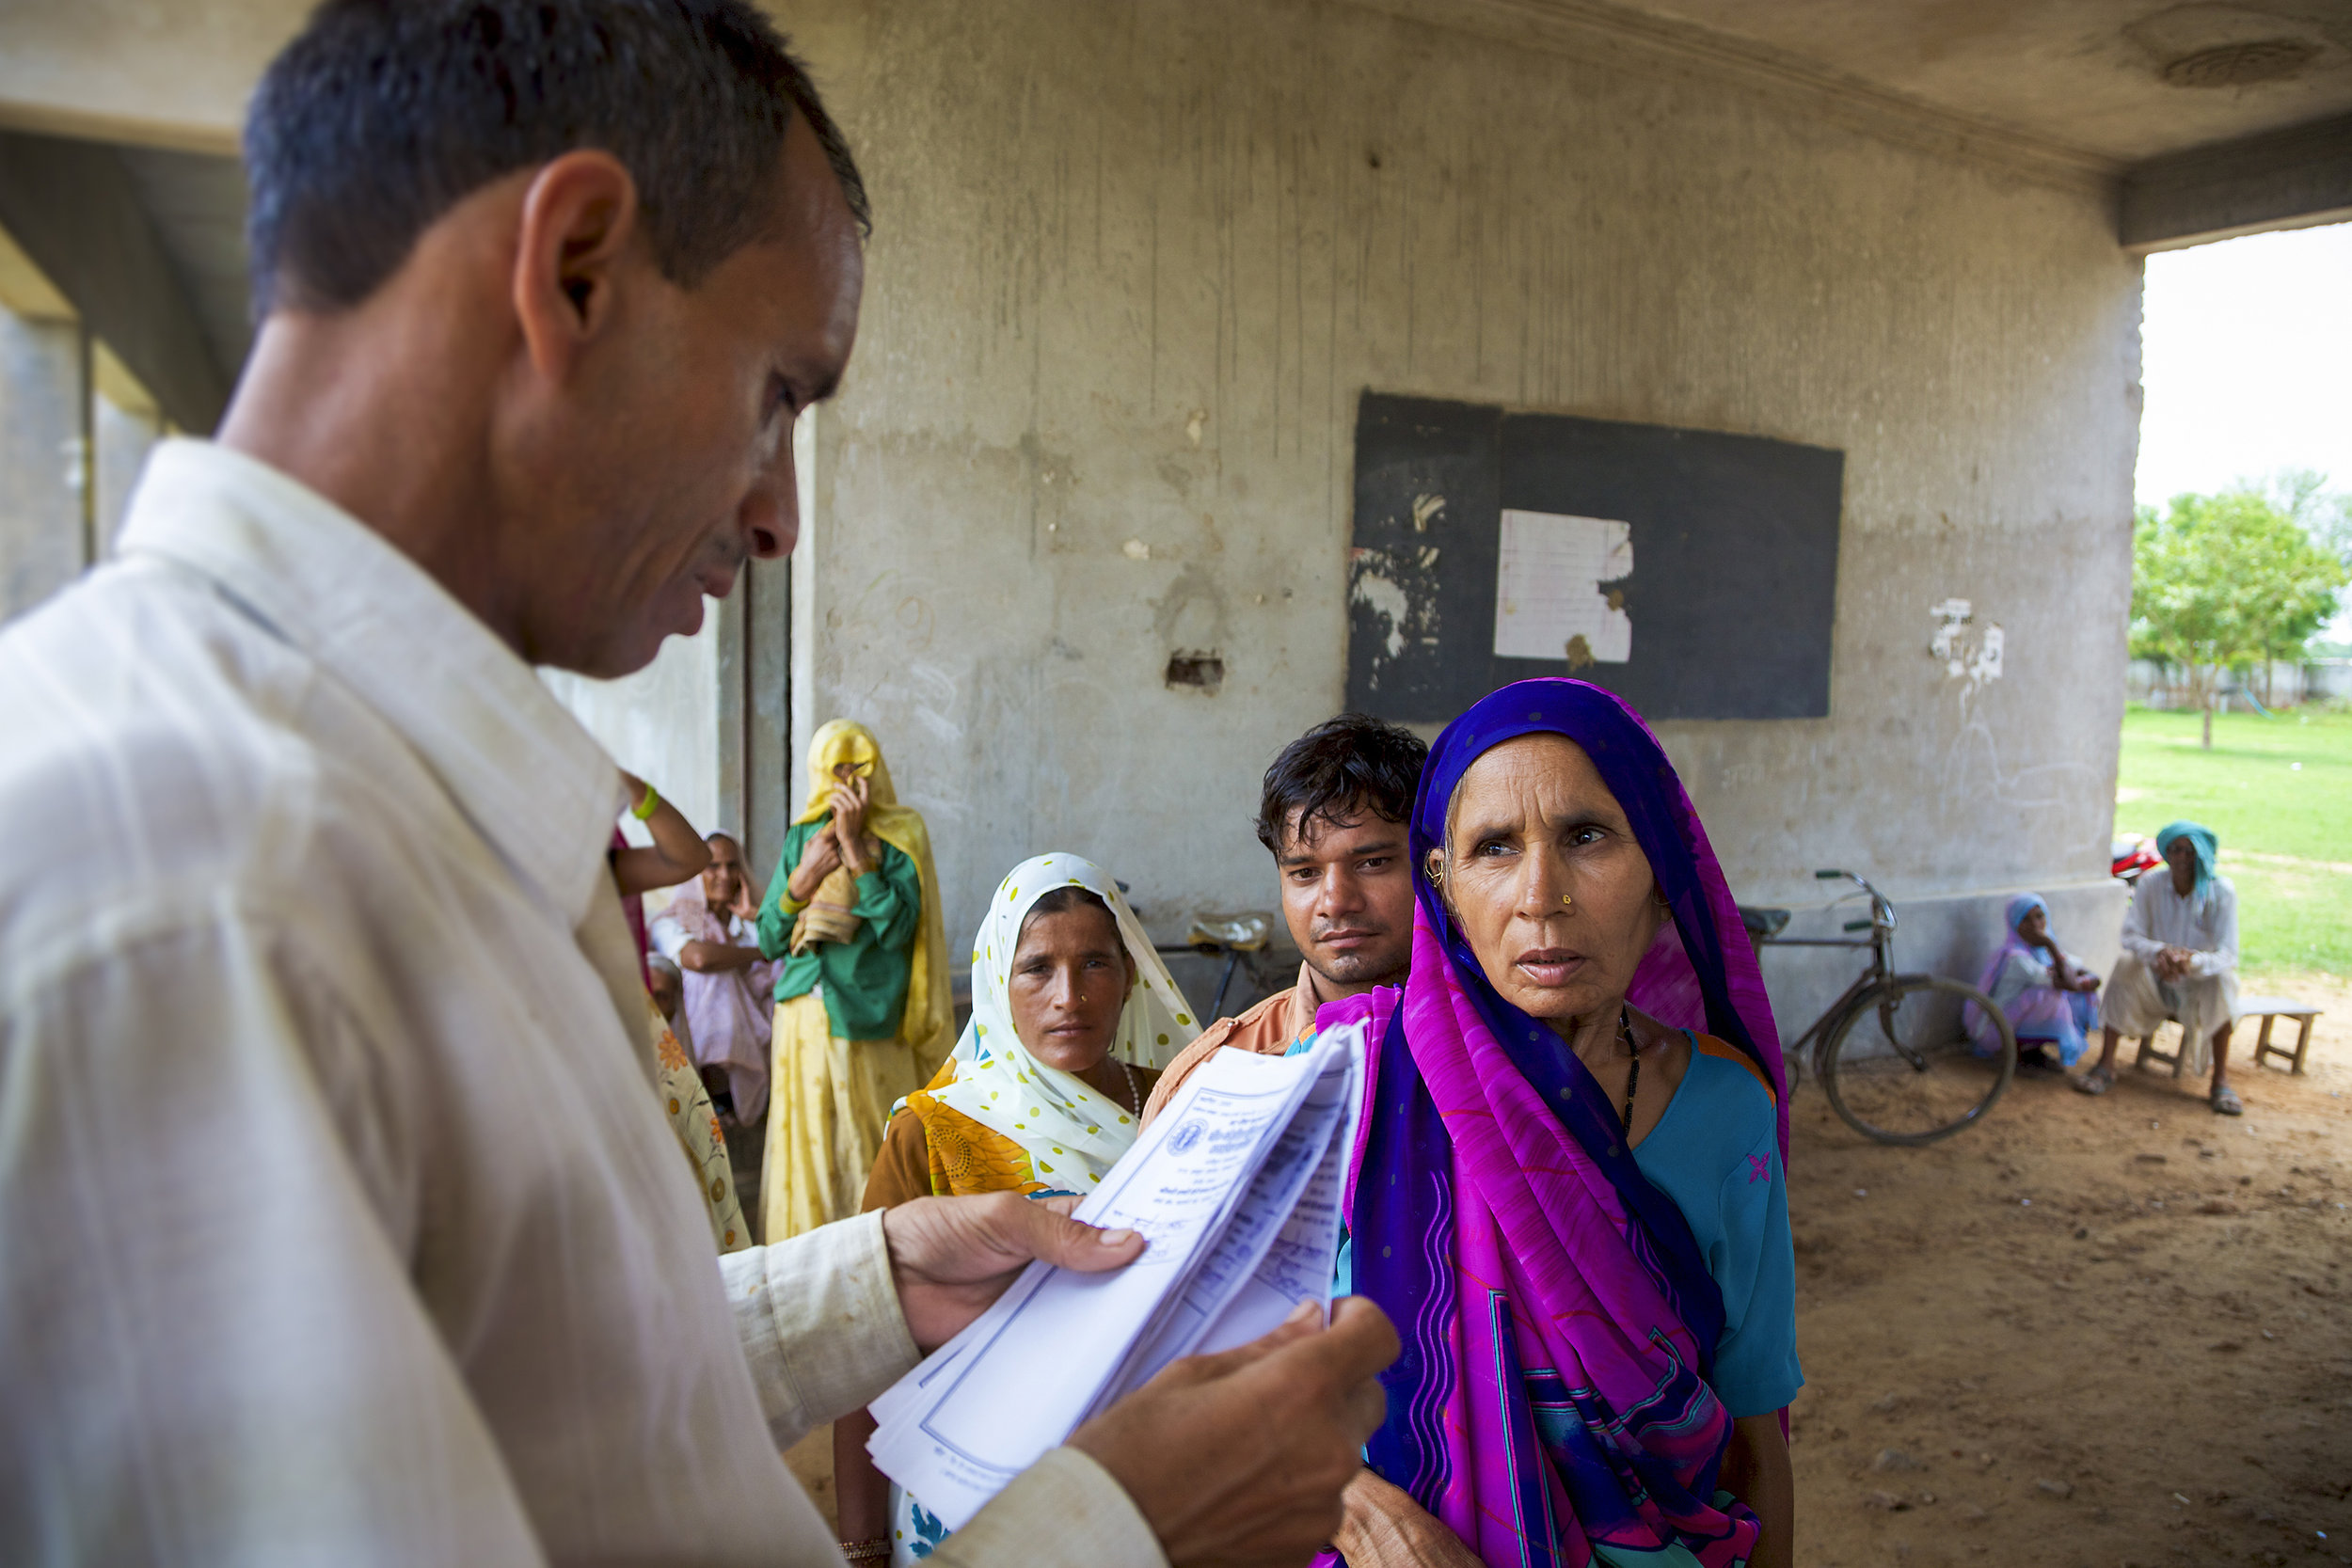 Indians waiting to see a doctor. photo:Michel Piccaya/shutterstock